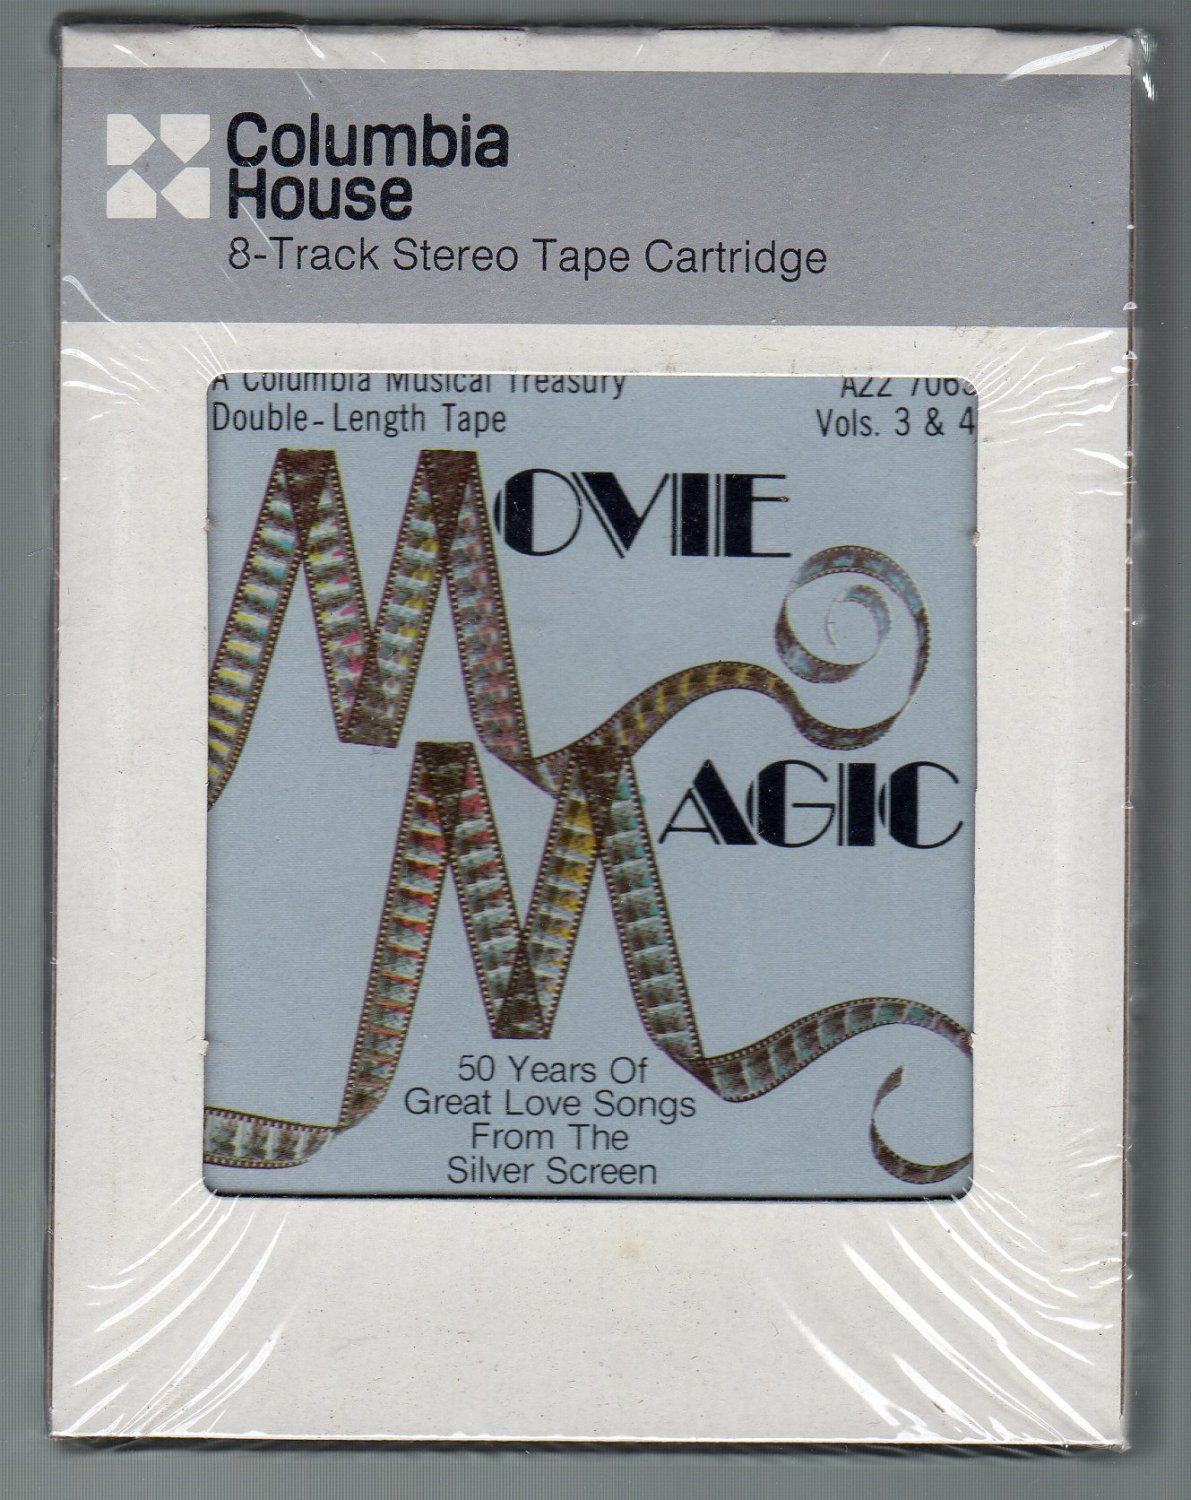 Movie Magic - 50 Years Of Great Love Songs From The Silver Screen Part 3 & 4 Sealed 8-track tape